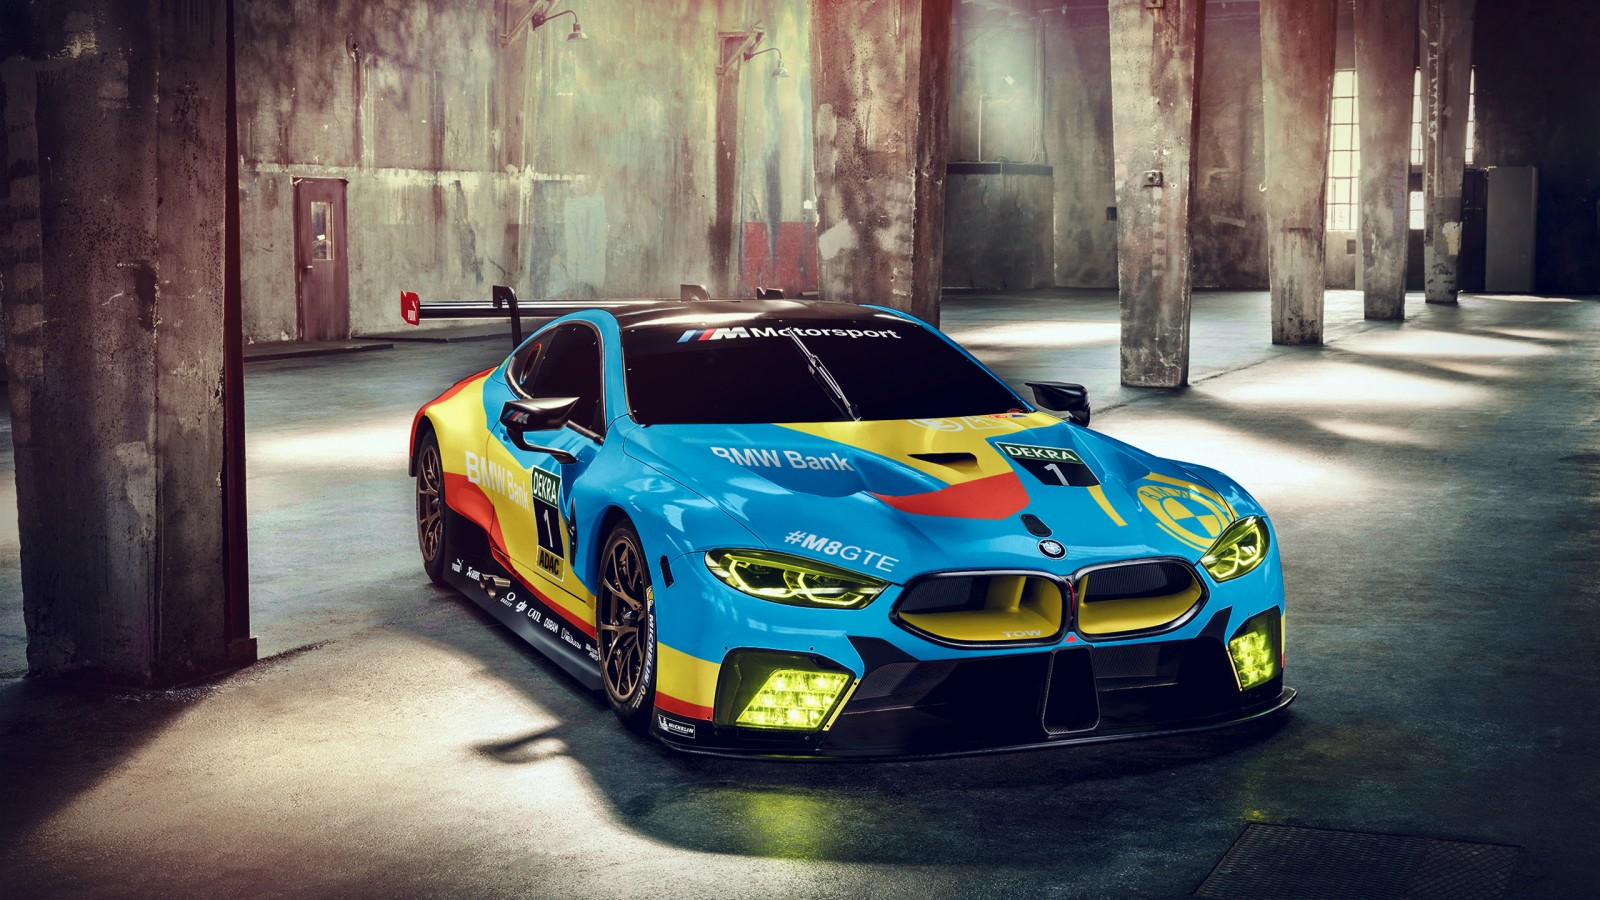 Bmw M 5 >> BMW M8 GTE 2018 Wallpaper | HD Car Wallpapers | ID #9270